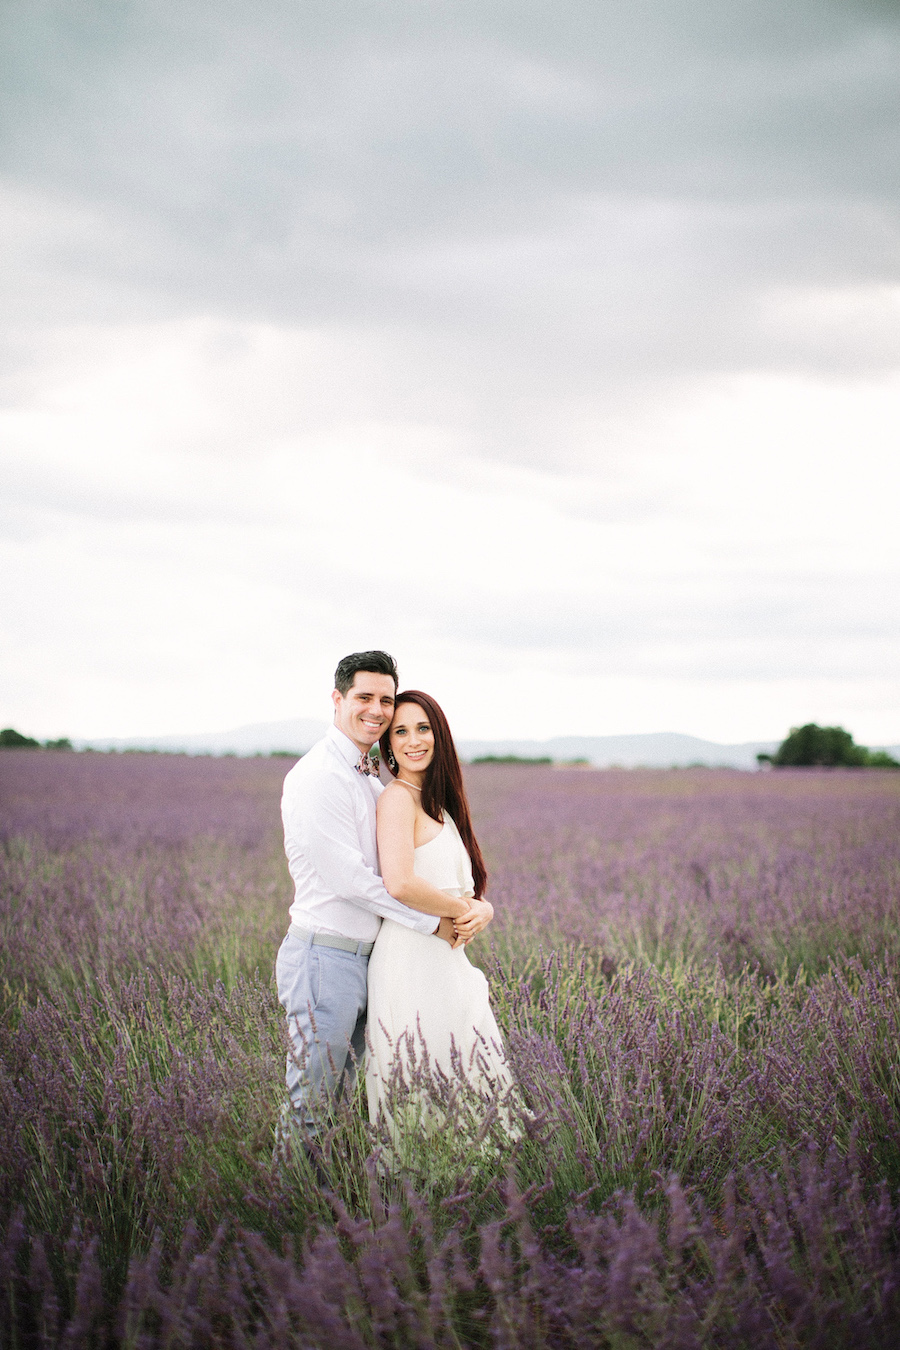 saya-photography-pre-wedding-provence-lavander-field-31.jpg